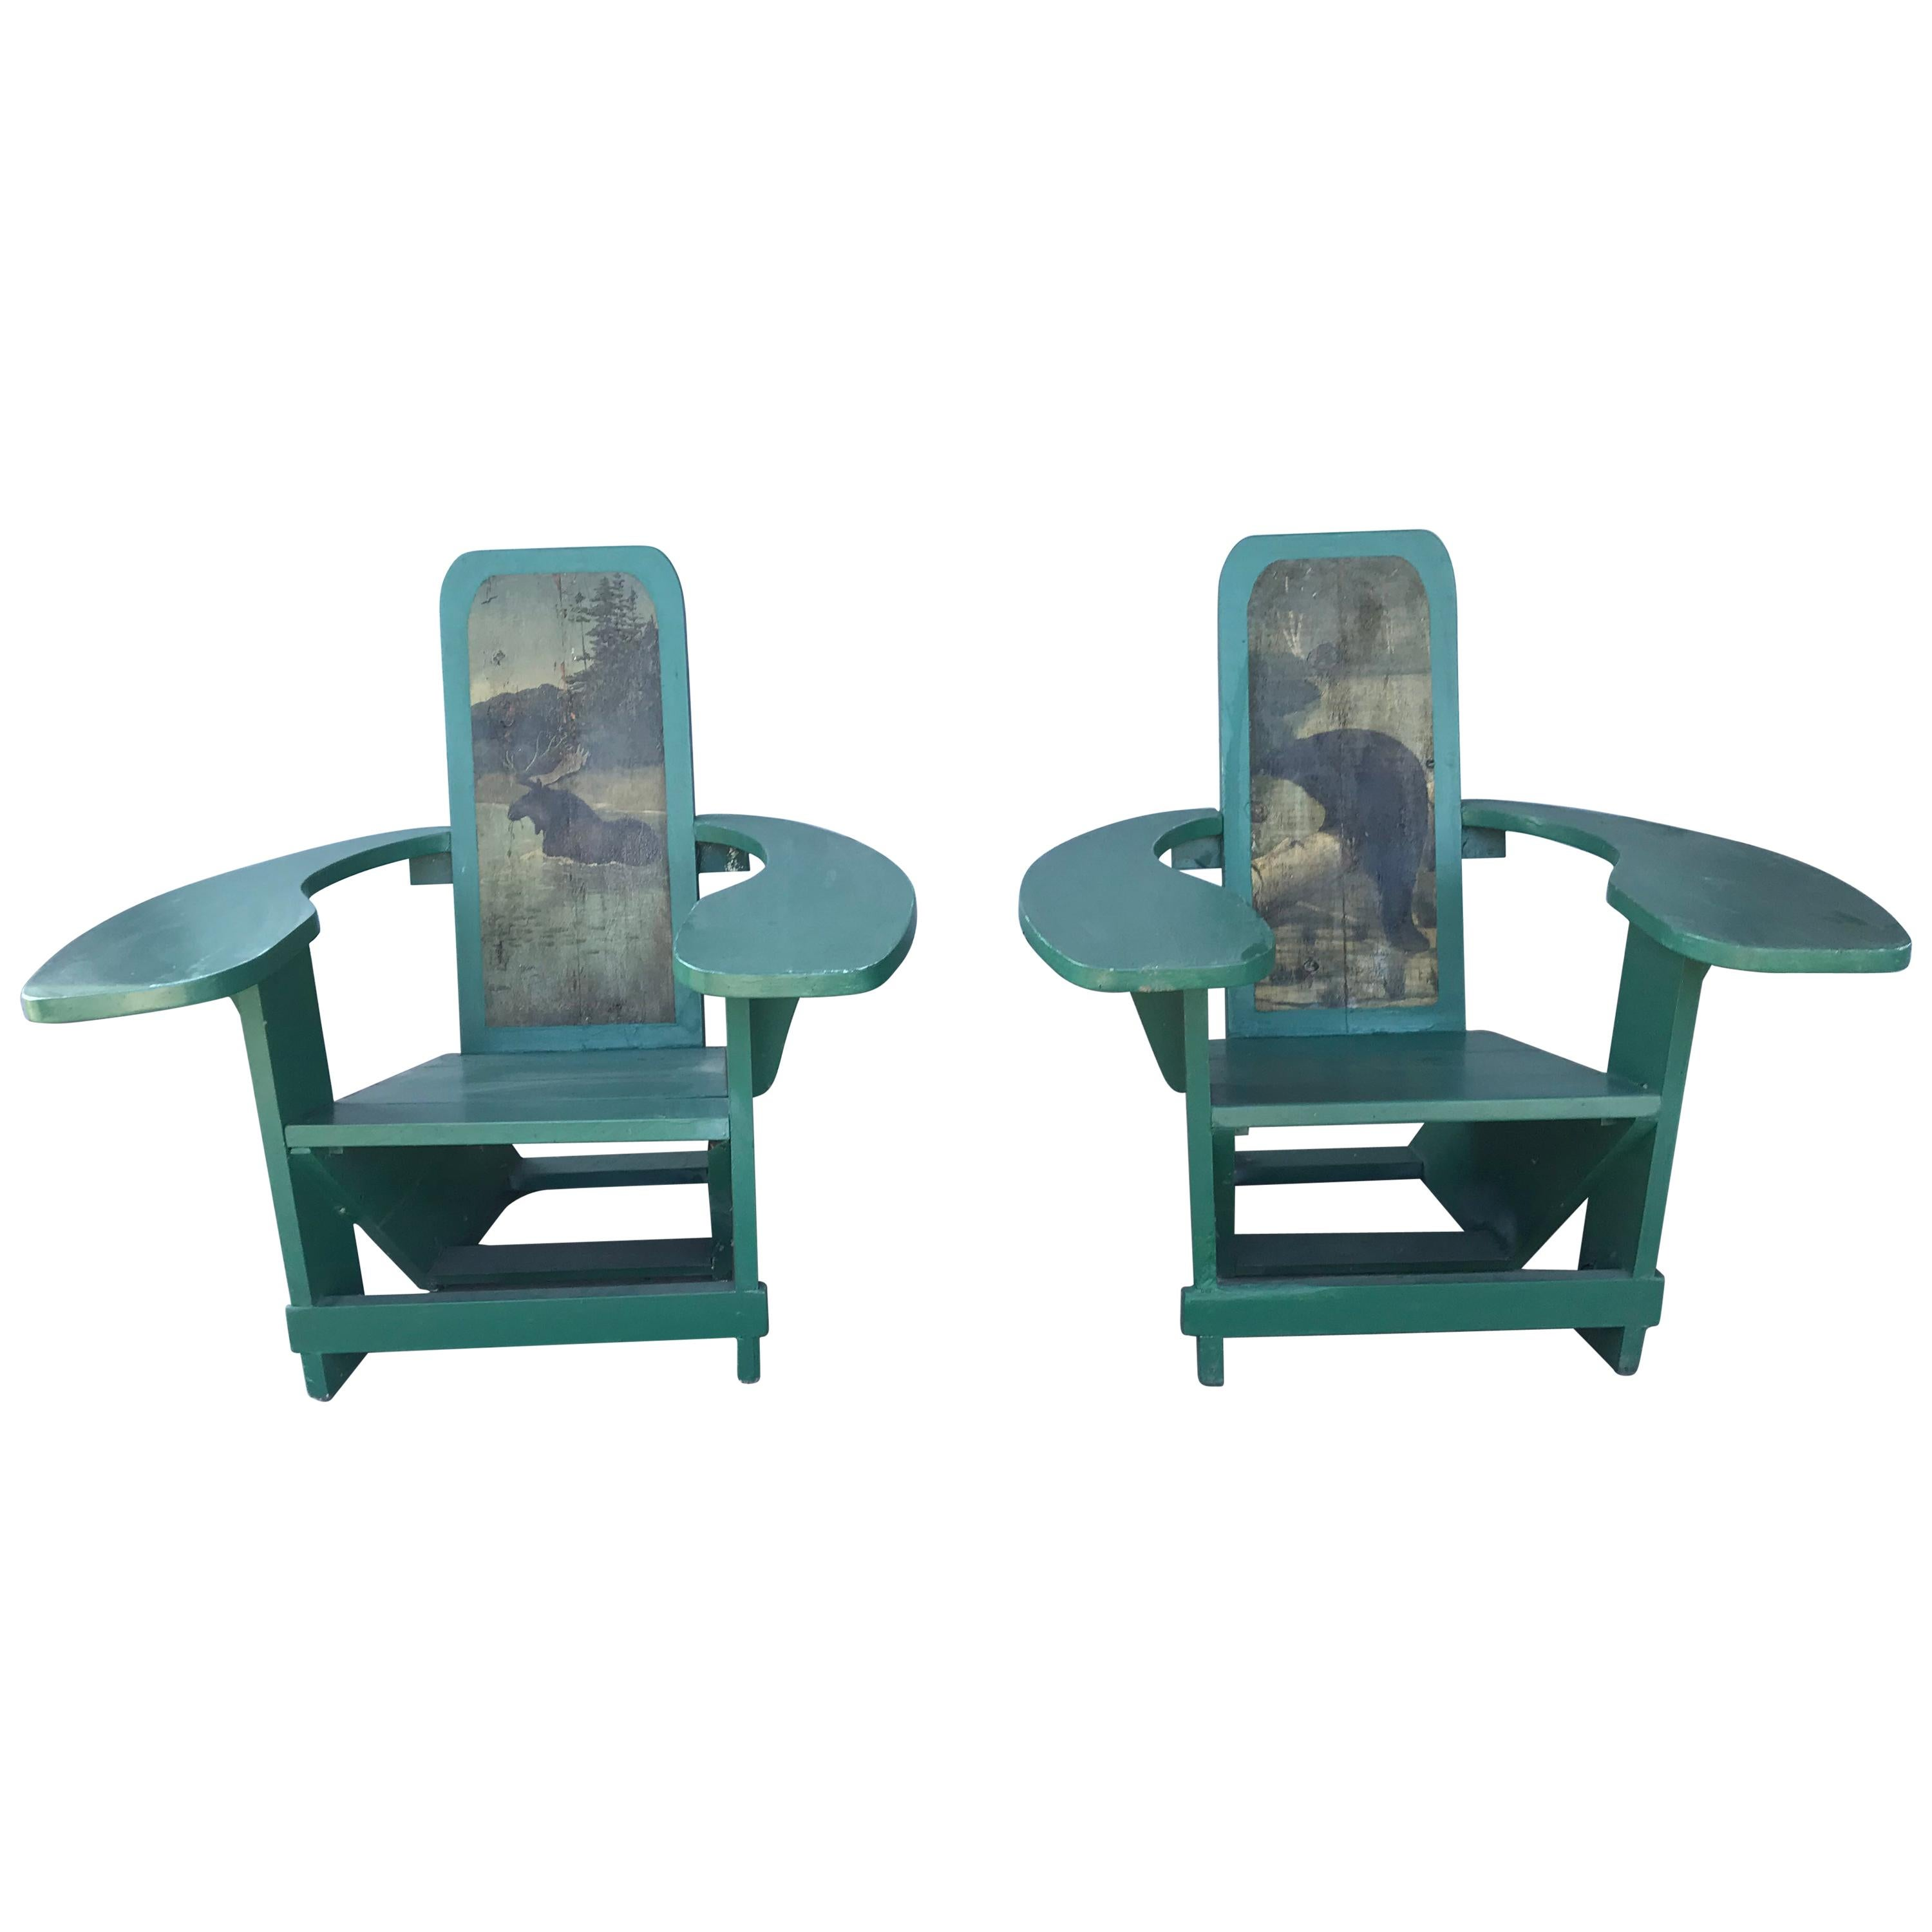 Pair of Westport Style Deck Chairs Hand Painted Backs, Exaggerated Arms